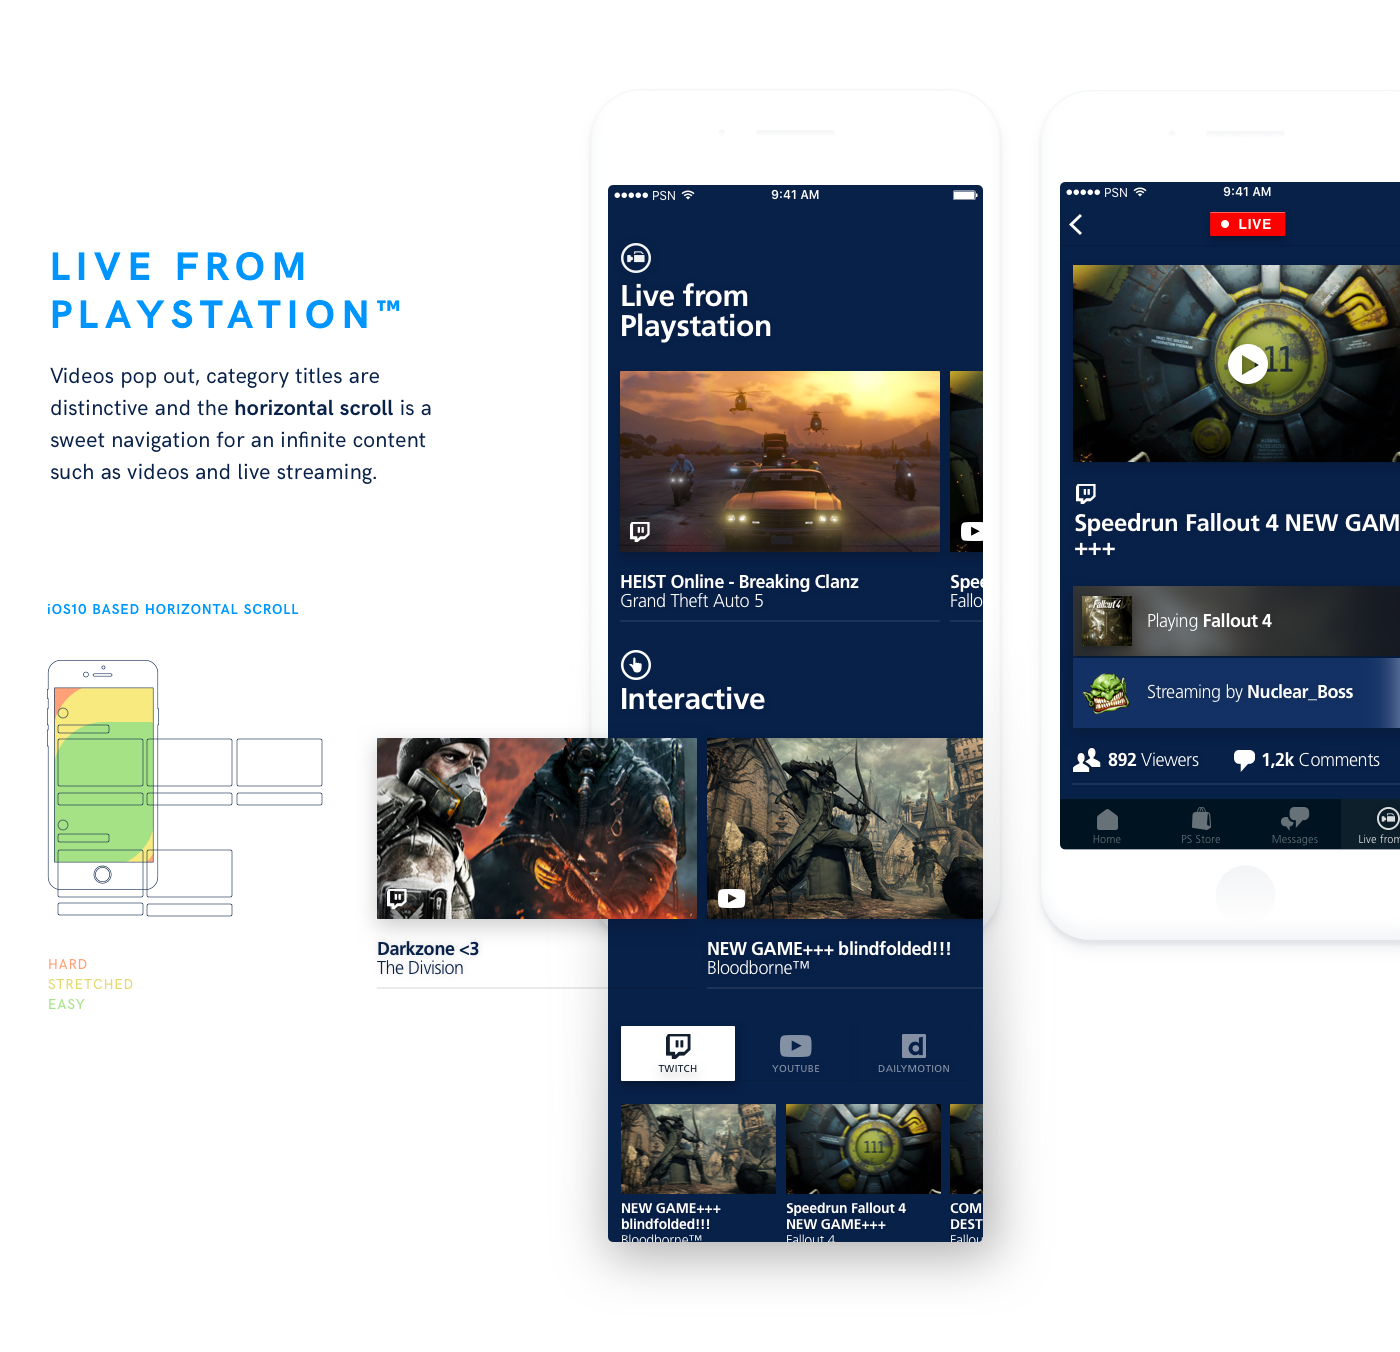 playstation redesign UI ux Progressive Disclosure iphone companion Sony Games collections